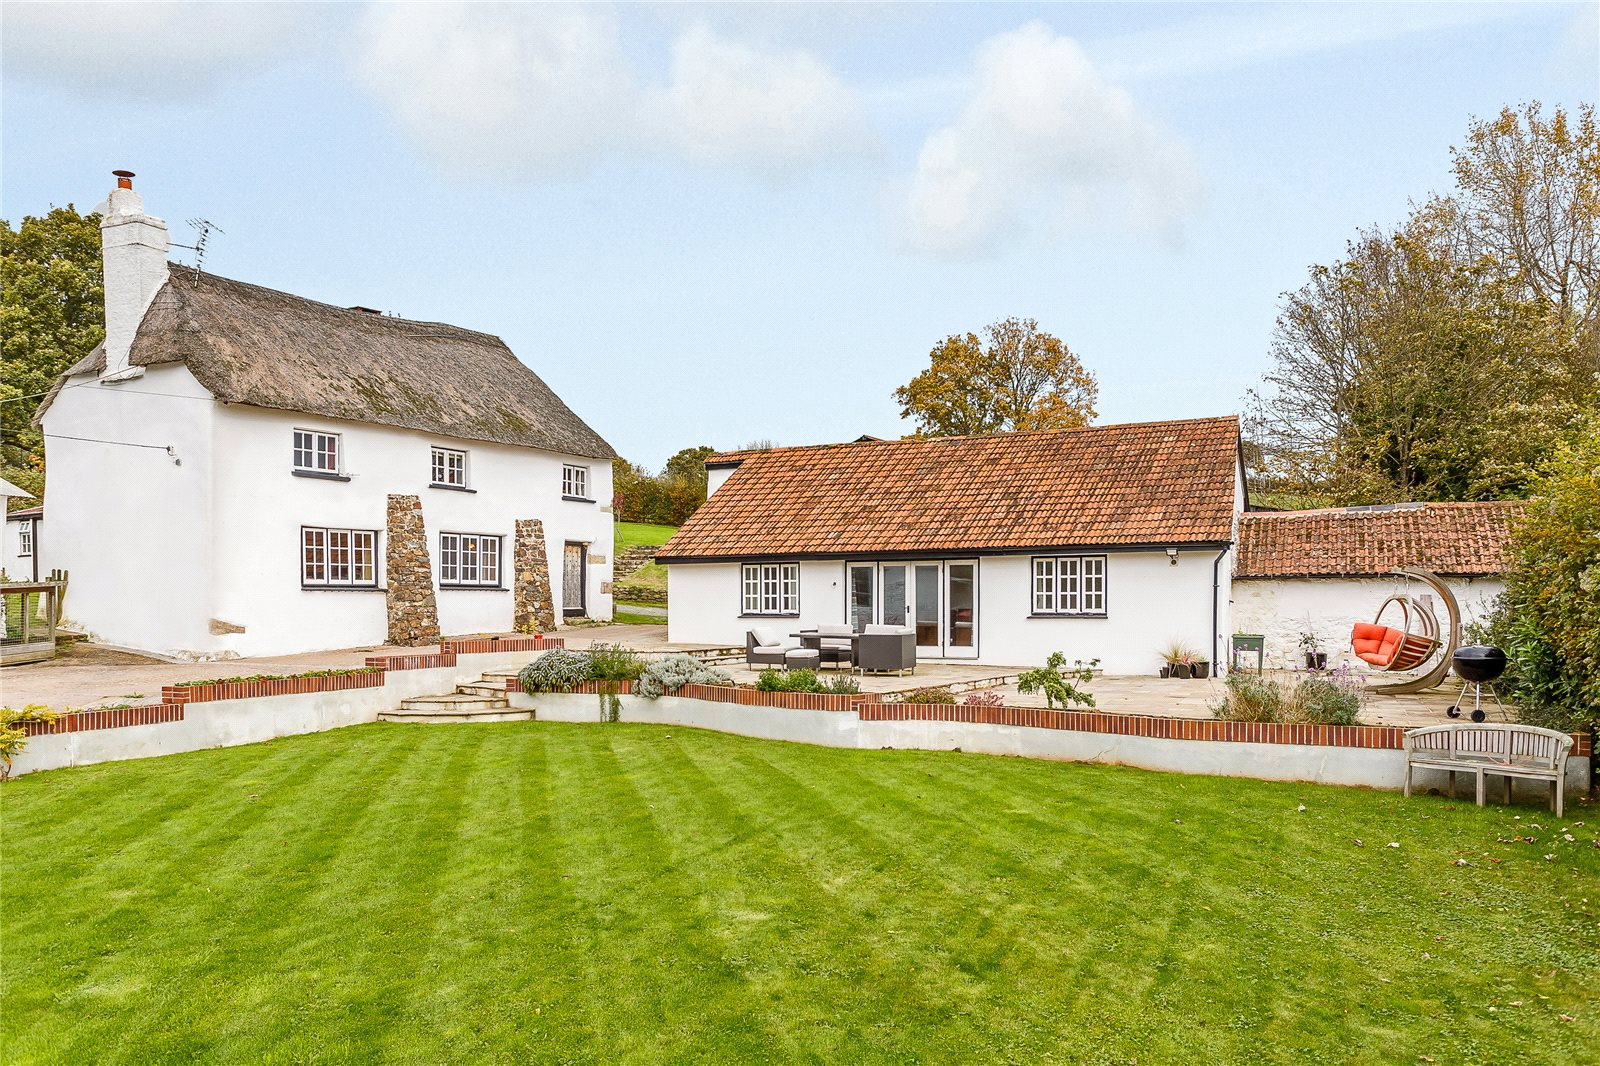 Single Family Home for Sale at Doddiscombsleigh, Exeter, Devon, EX6 Exeter, England